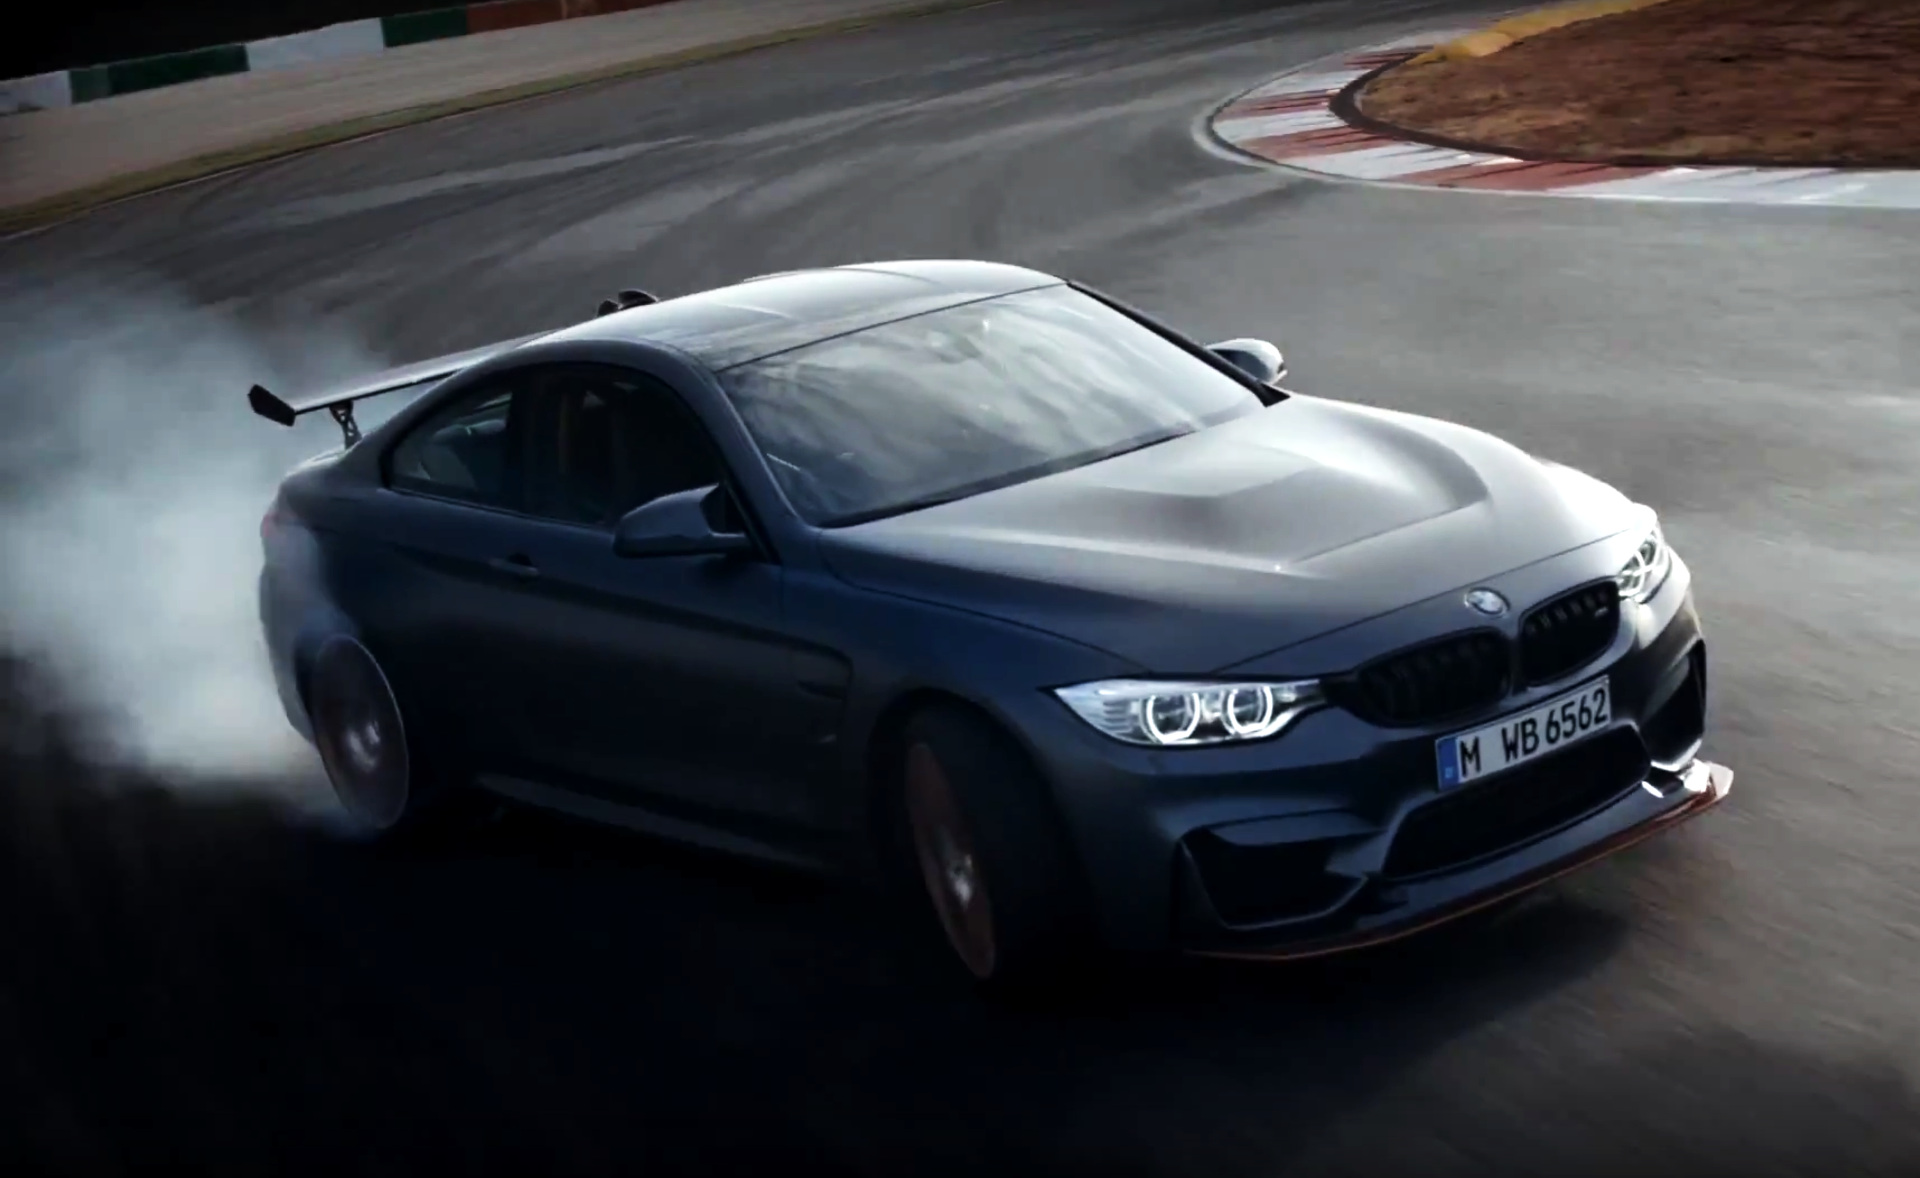 bmw m4 gts video zeigt 500 ps sportler auf der rennstrecke. Black Bedroom Furniture Sets. Home Design Ideas